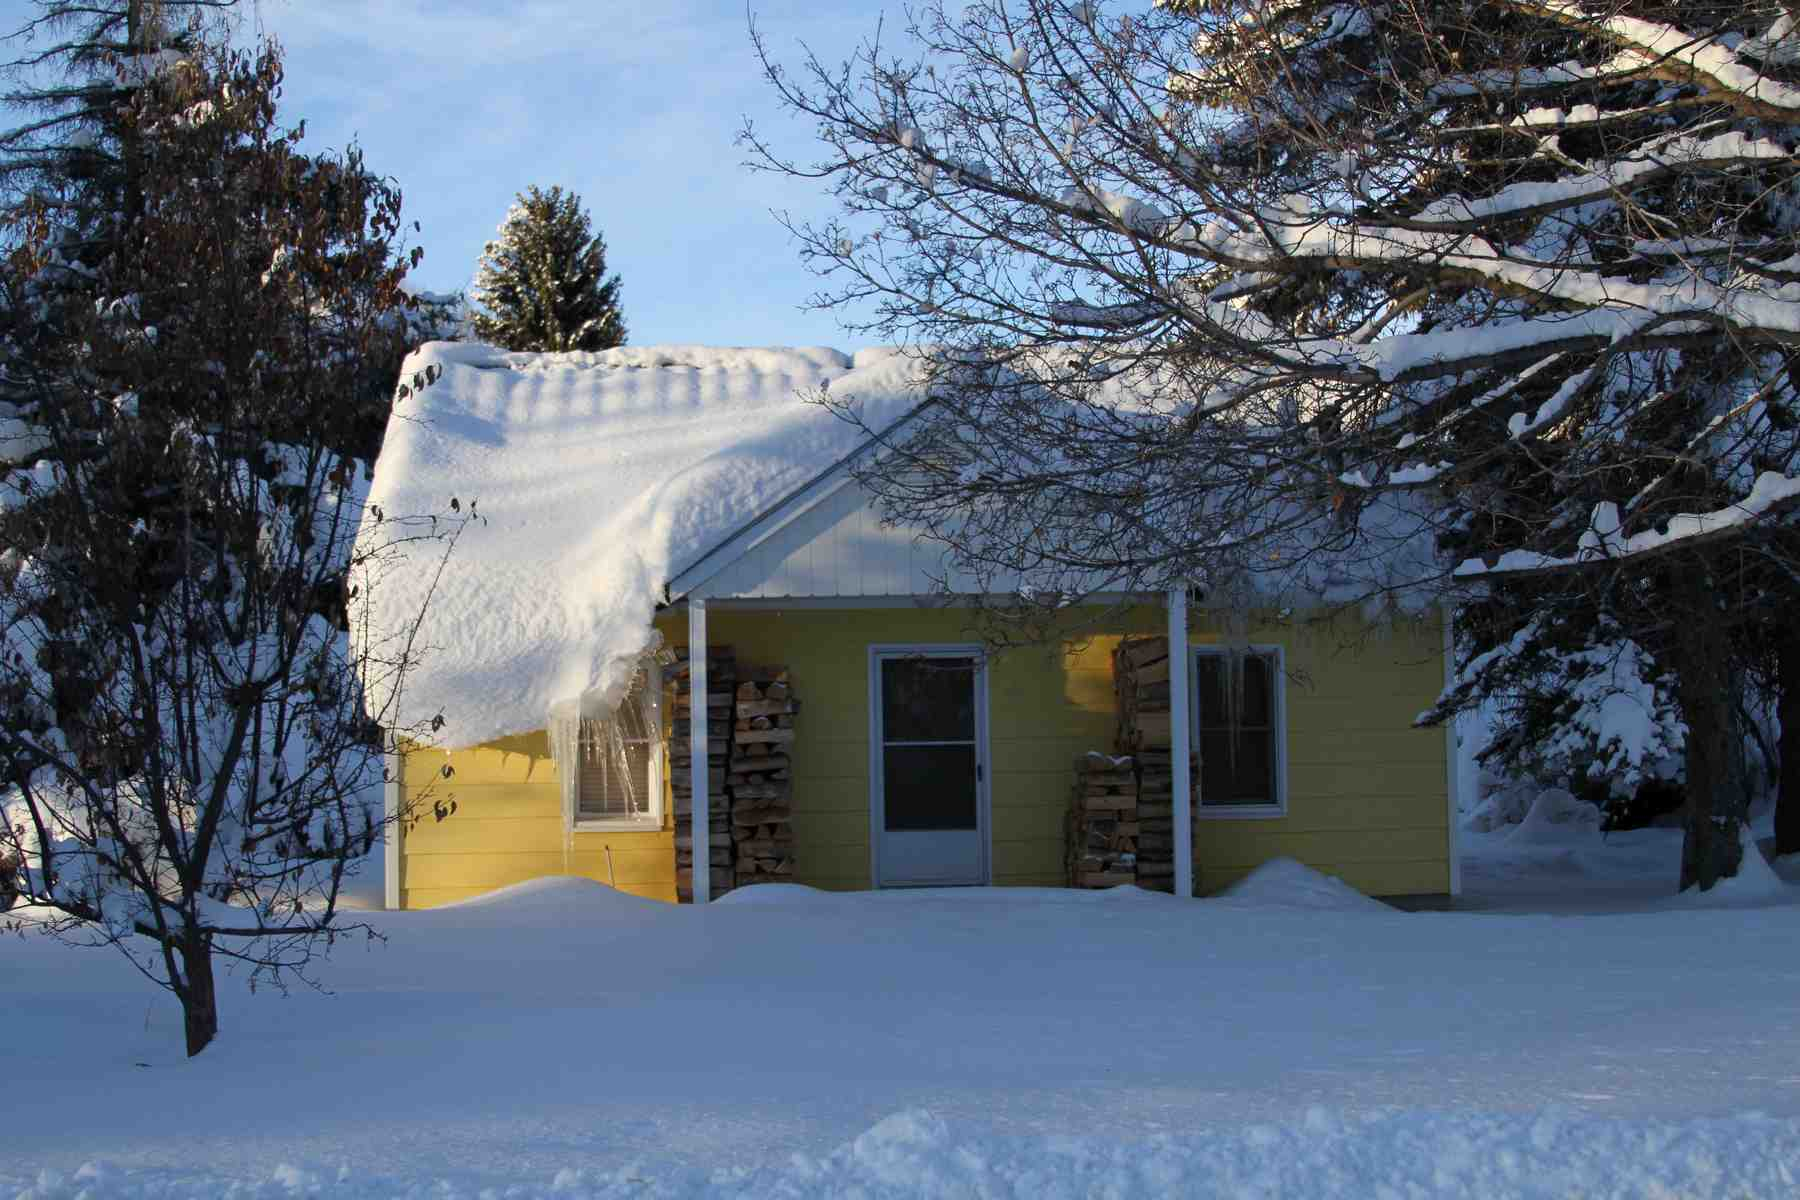 Single Family Home for Sale at Charming Home In Old Hailey 301 S. 4th Ave Hailey, Idaho, 83333 United States